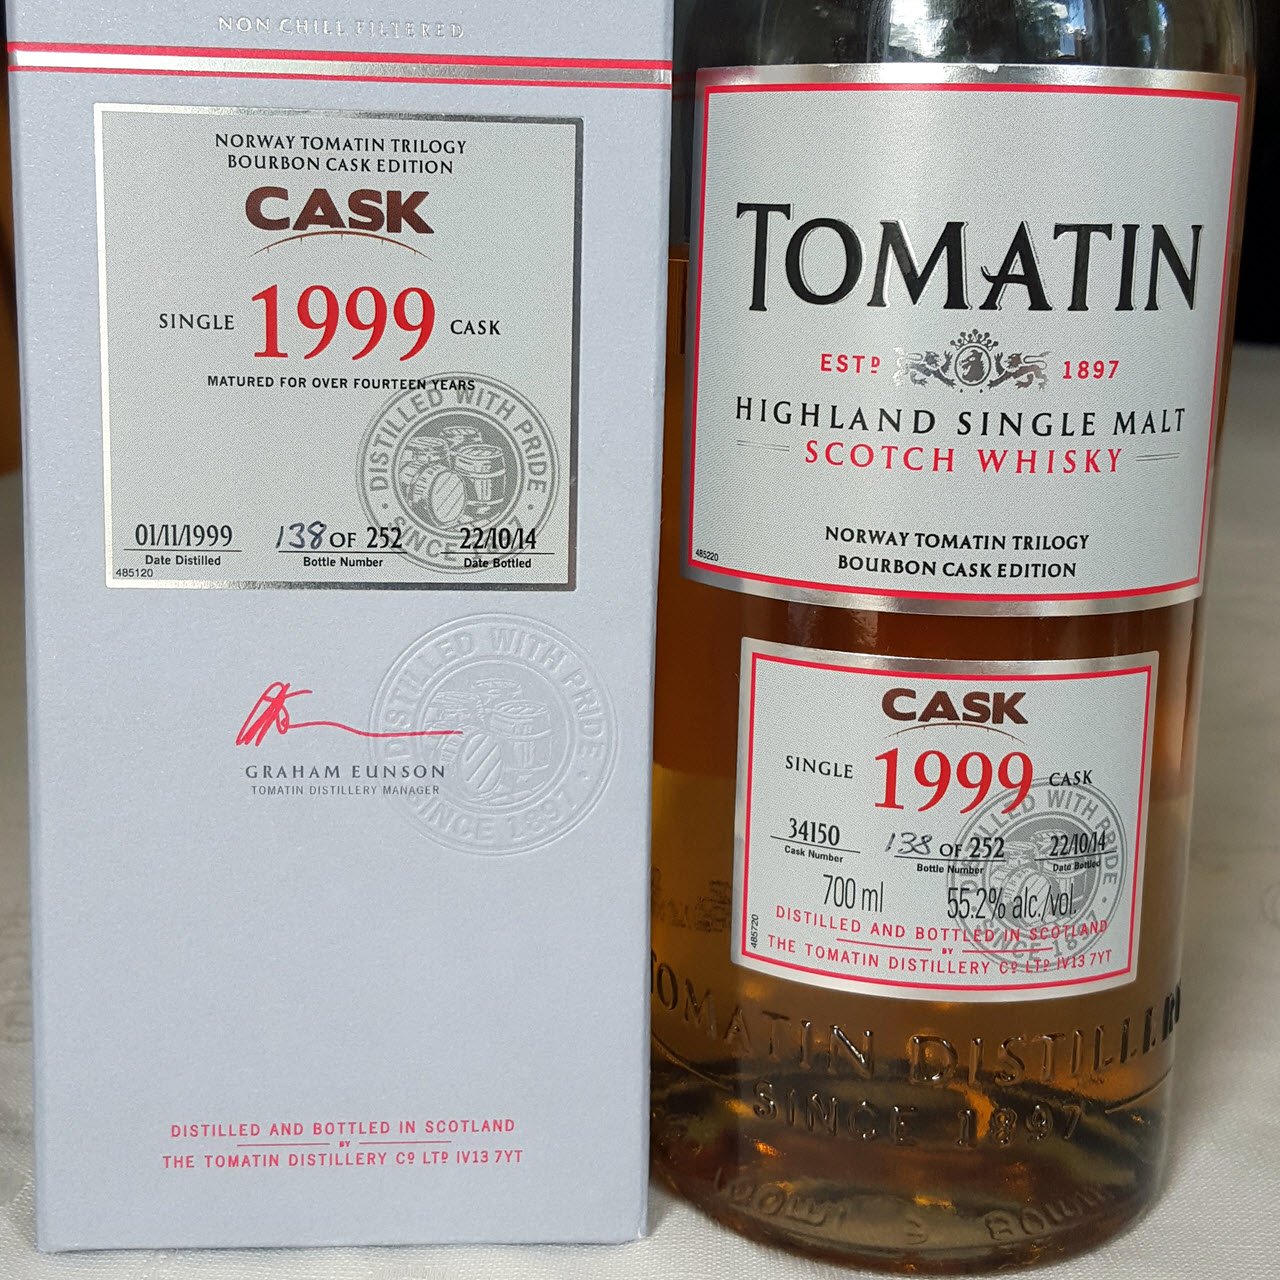 Tomatin 1999 Norway Tomatin Trilogy - Bourbon Cask Edition